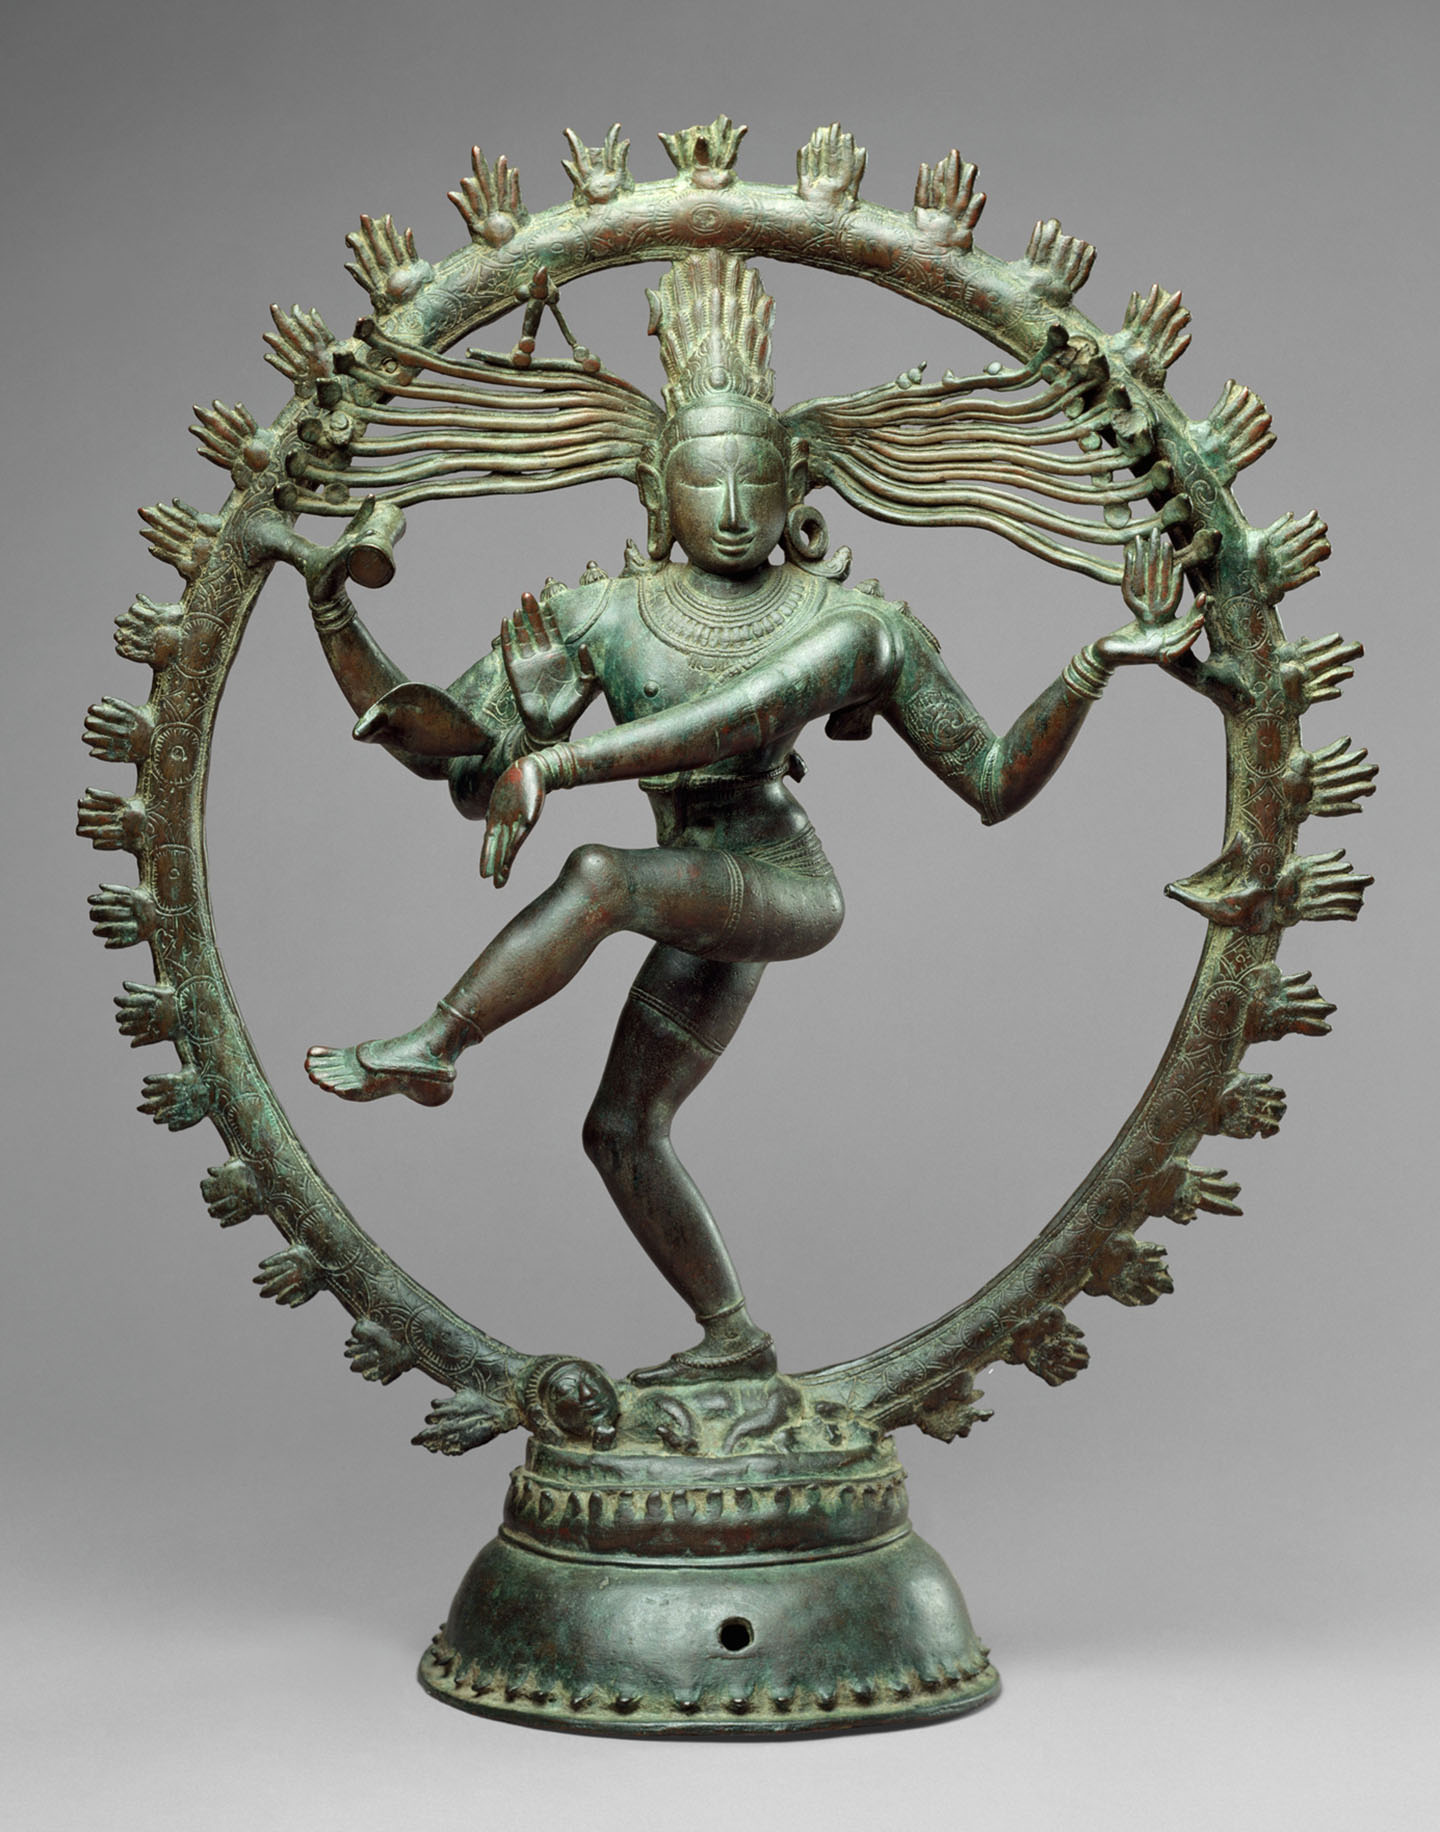 An oxidized copper sculpture of an Indian deity with four arms, standing on one leg dancing, encircled by a ring of stylized fire